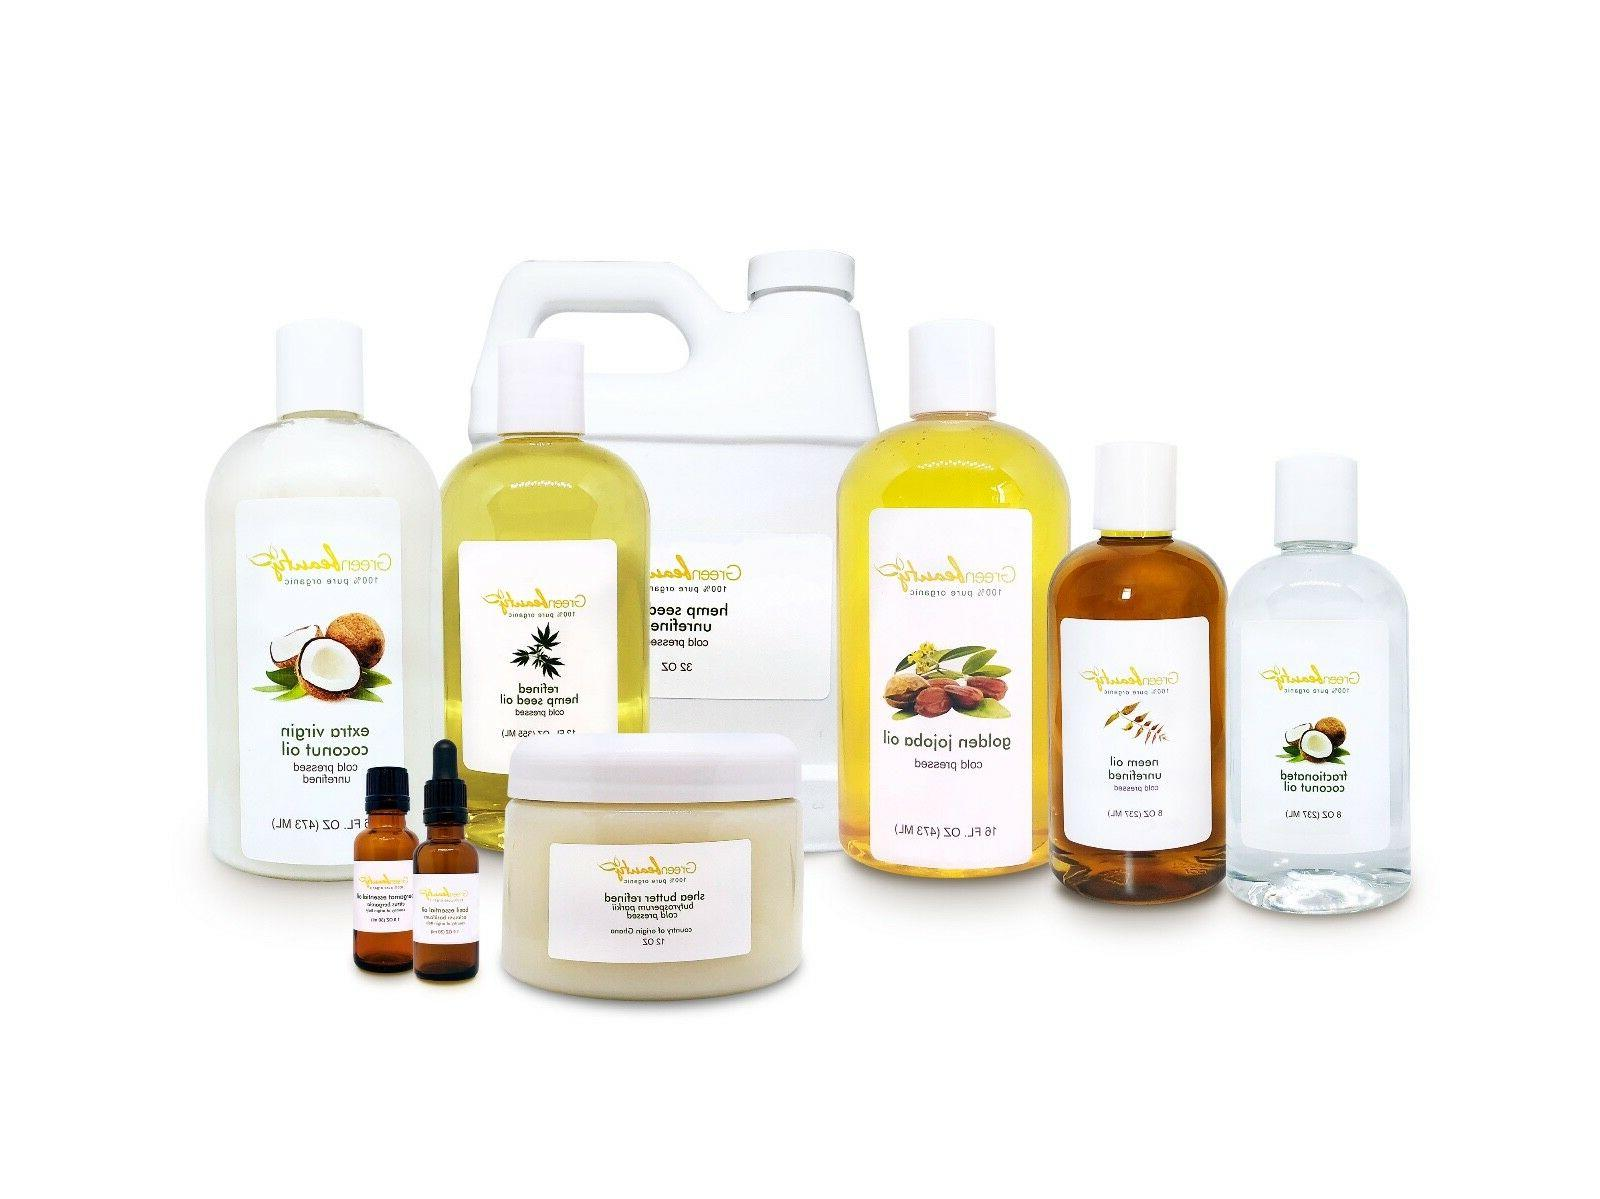 100 percent pure natural organic carrier oils